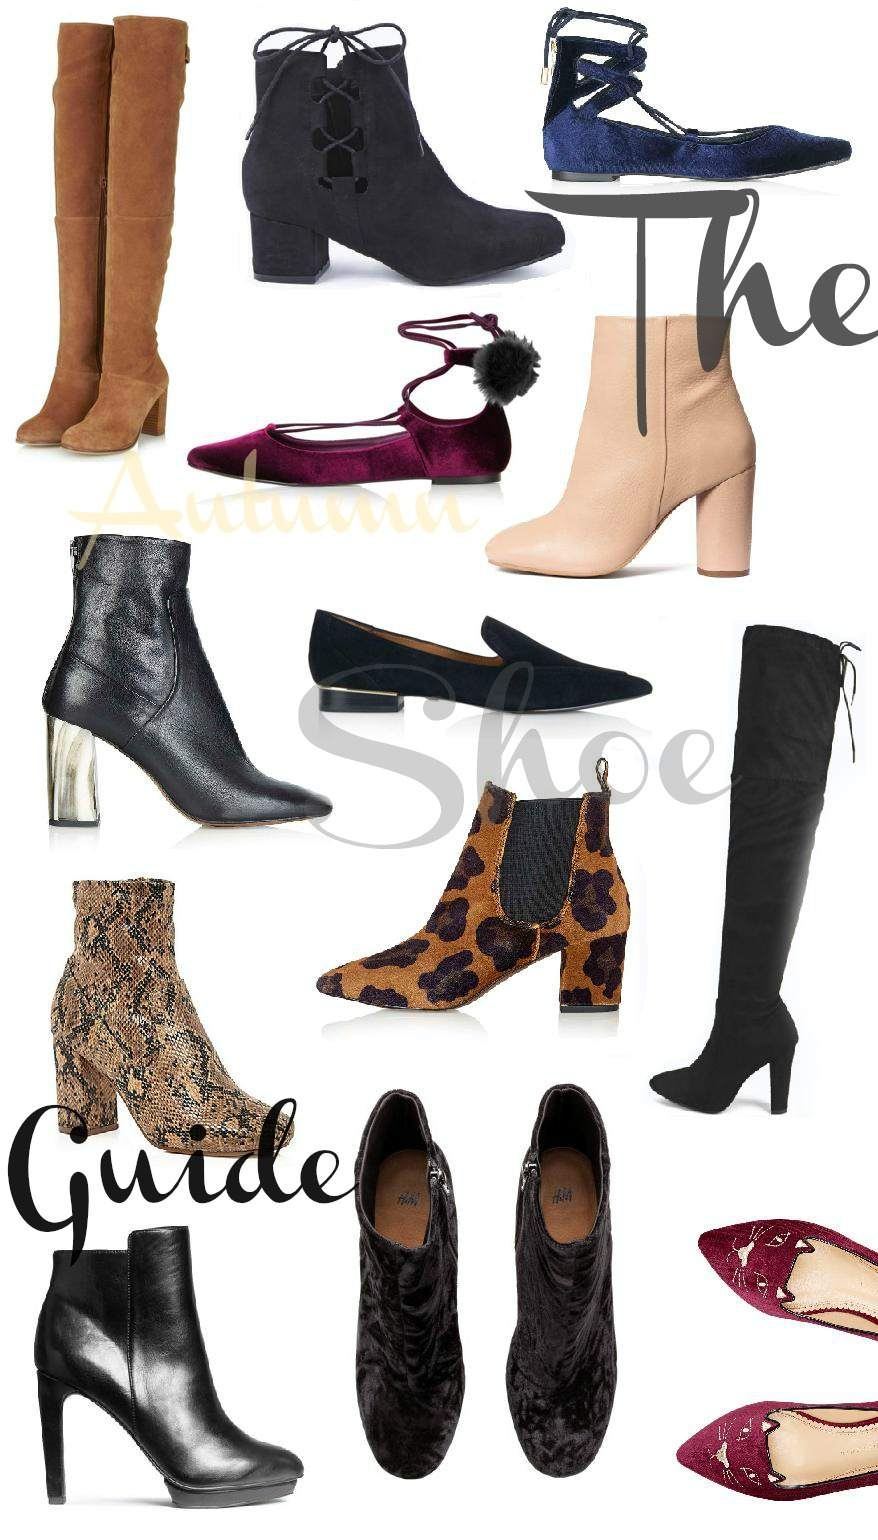 shoe wishlist autumn november 2015 edit